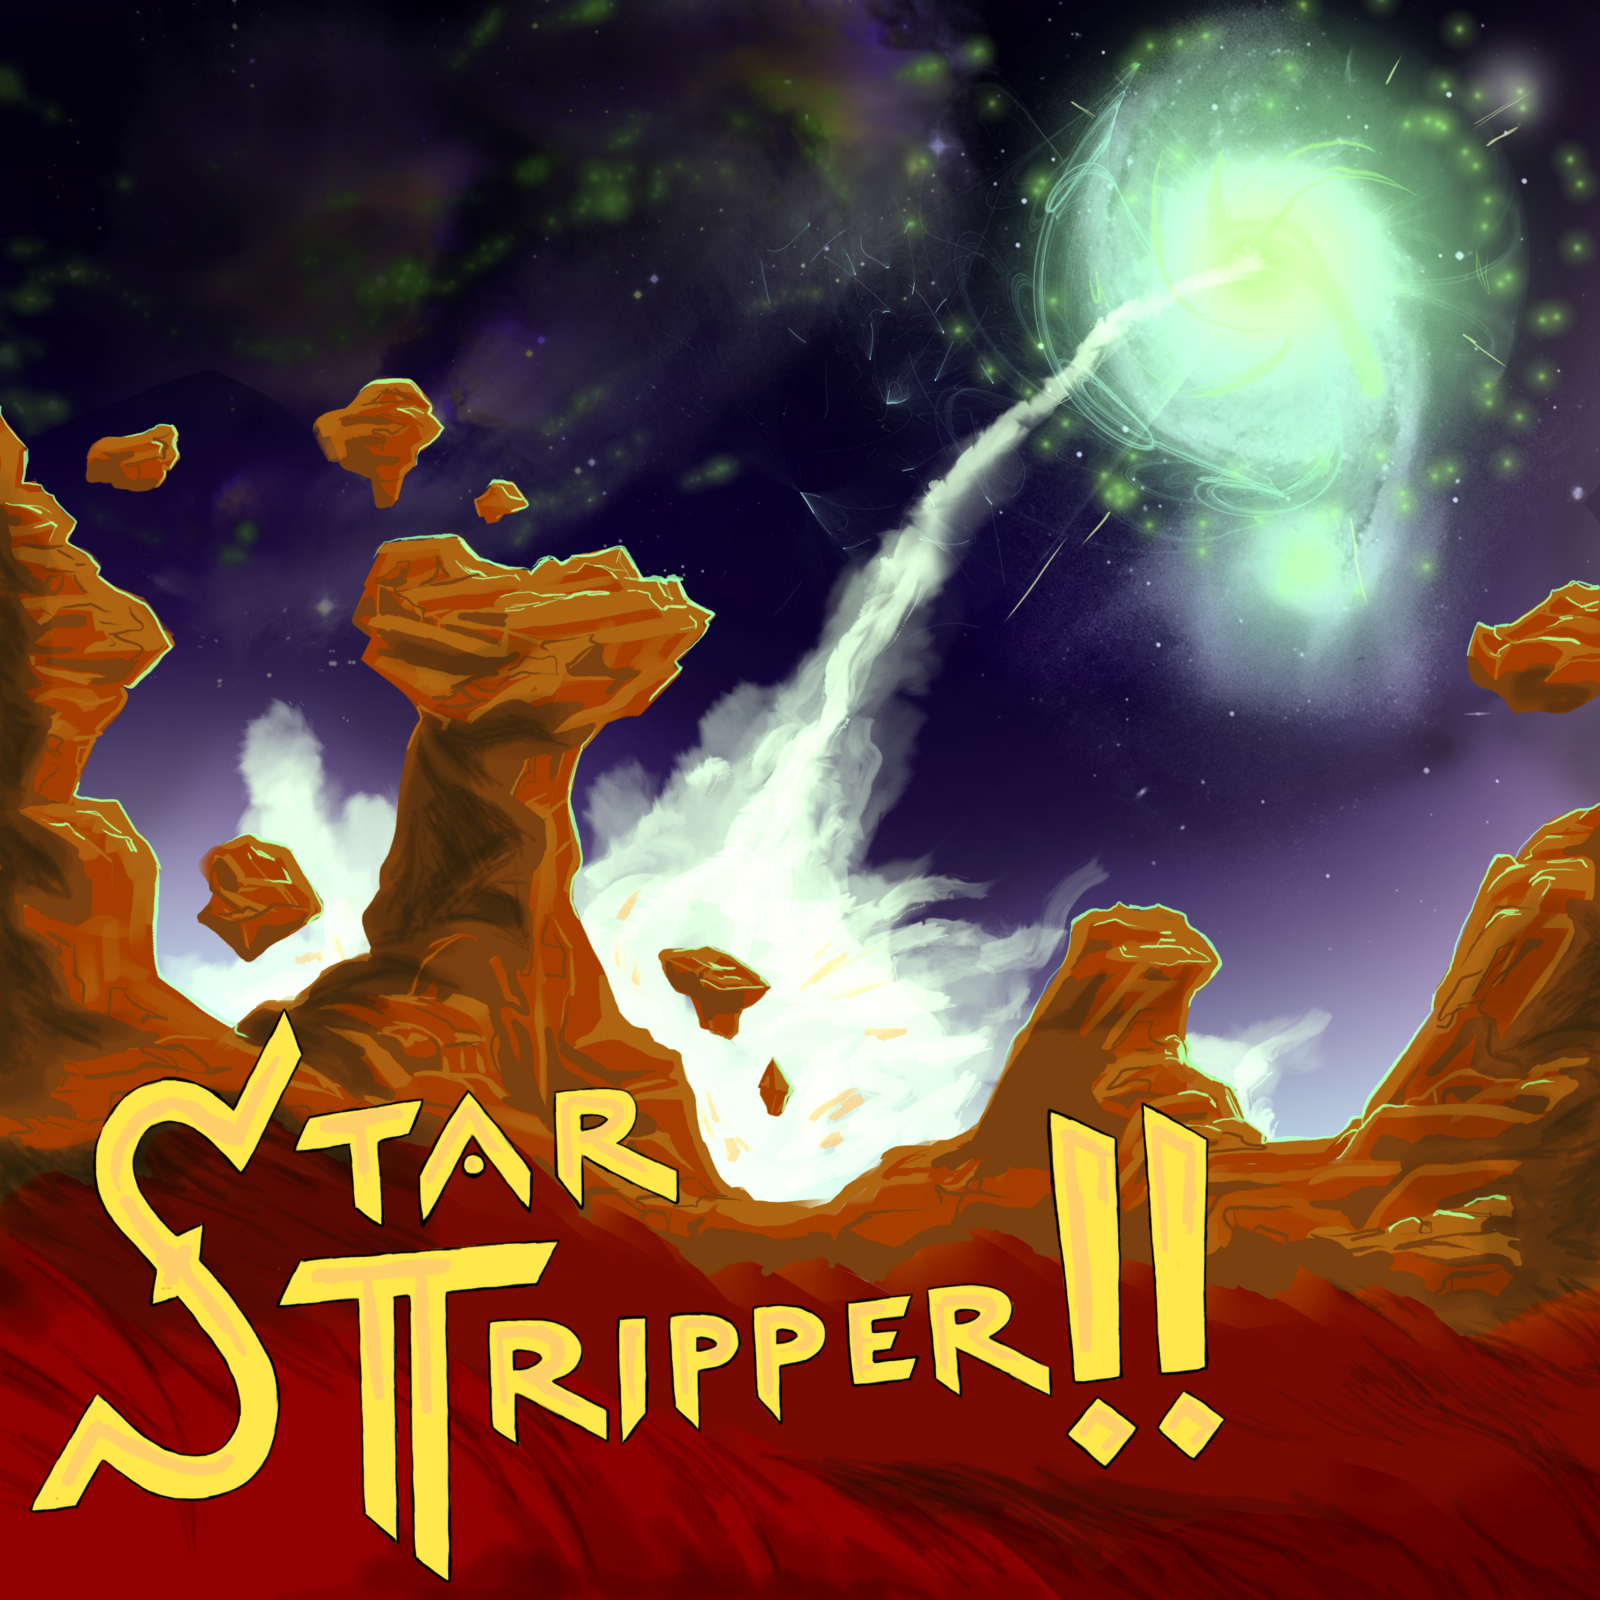 Launches A Light Hearted And Whimsical Cosmic Experience